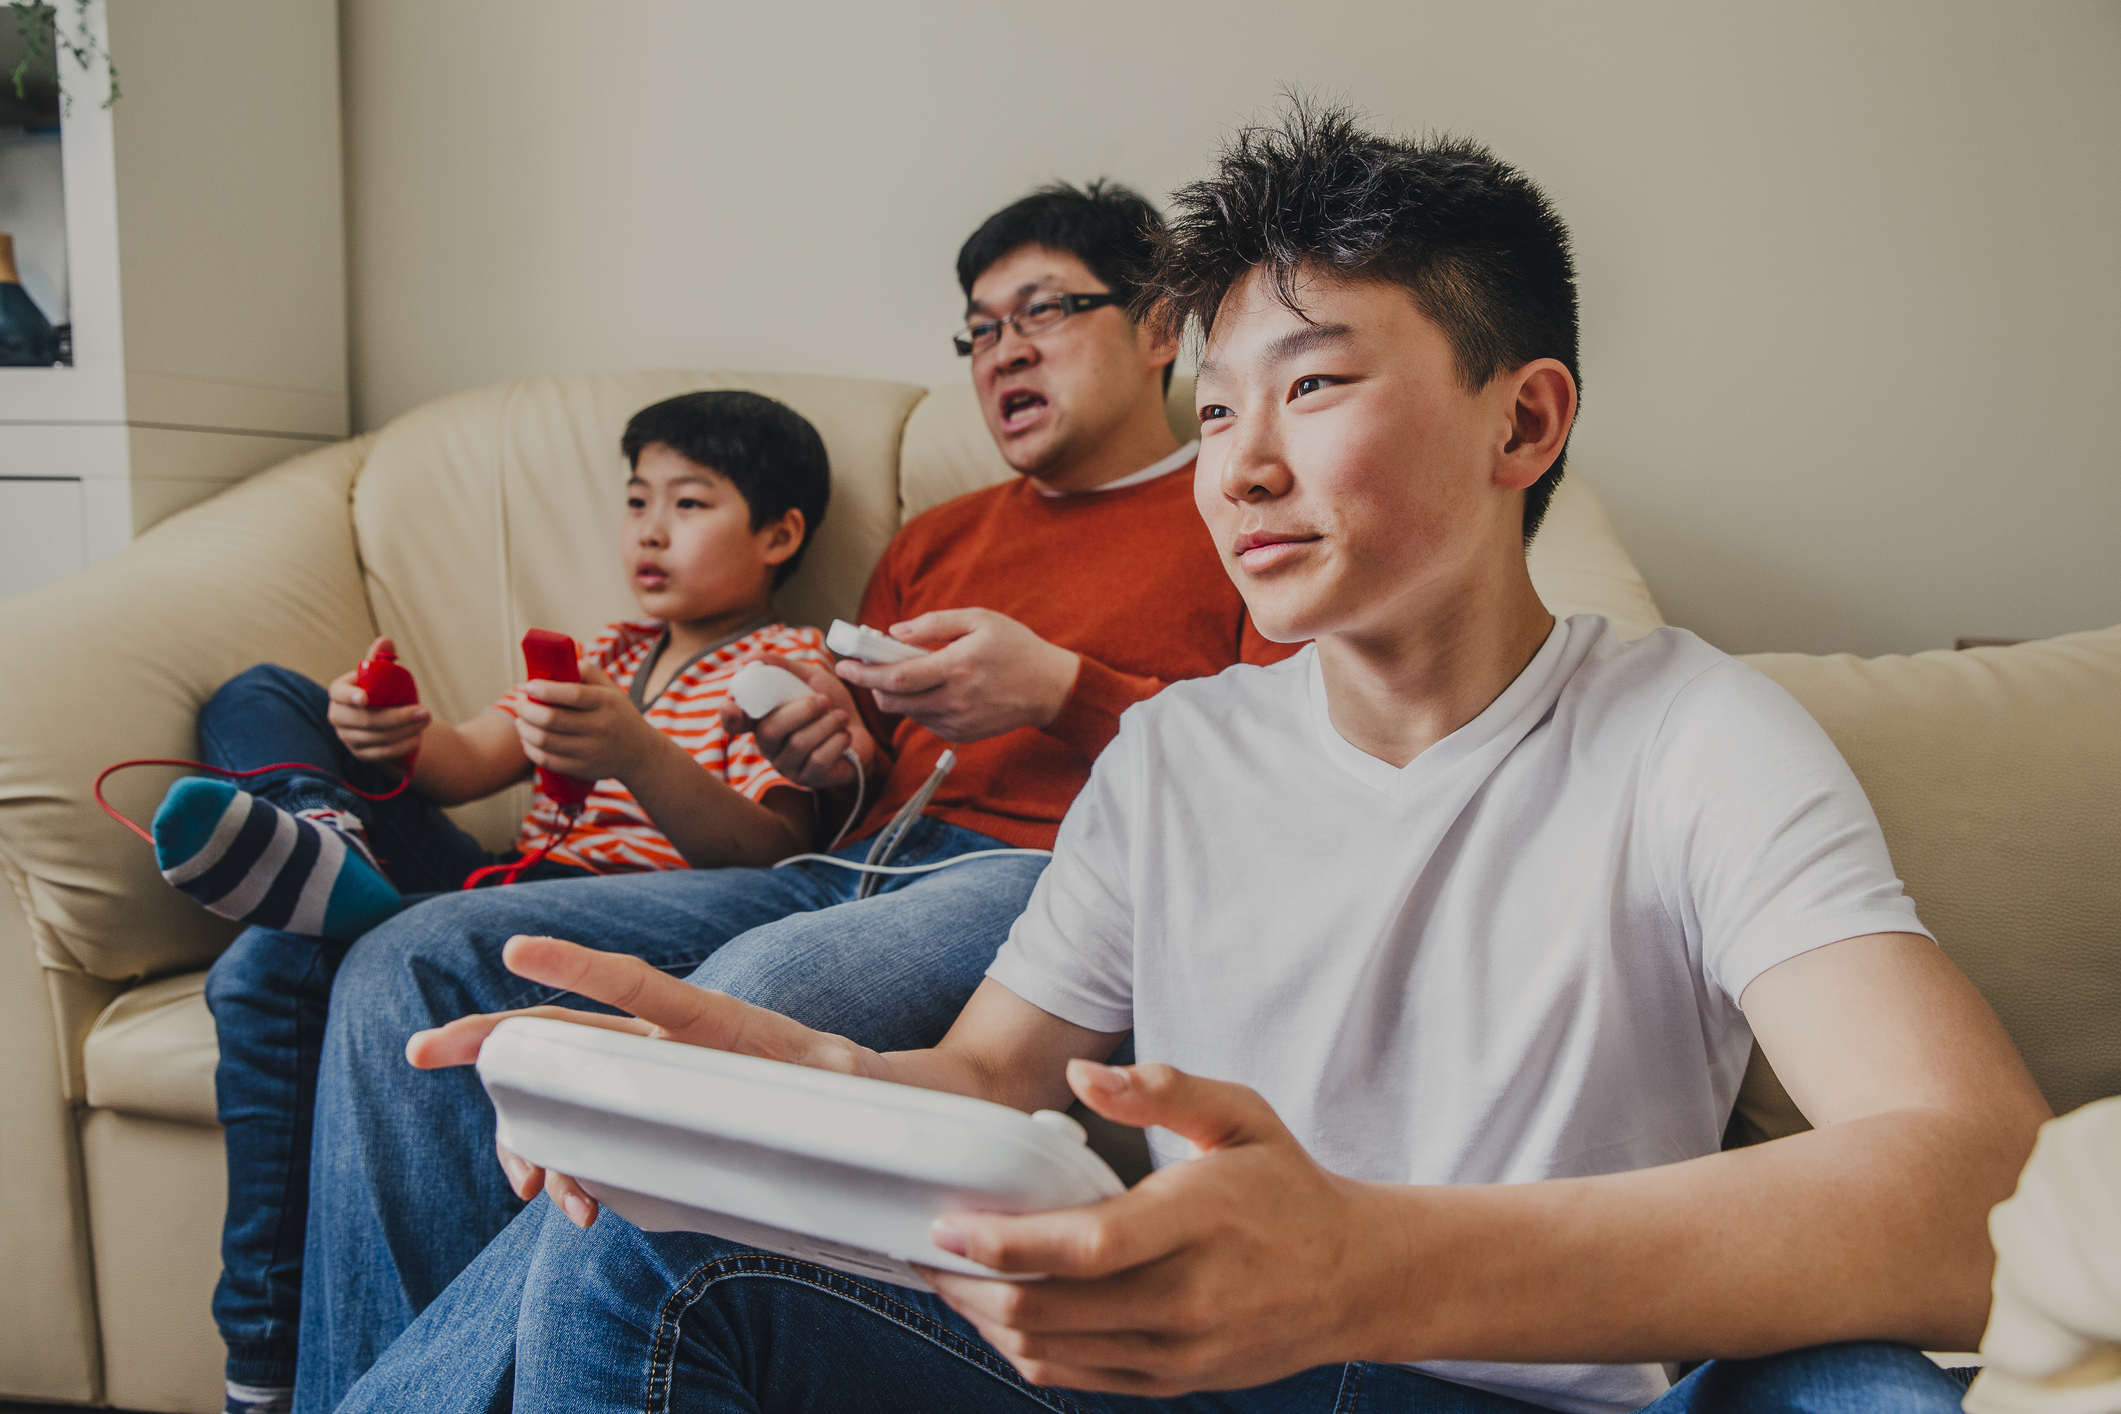 Asian boys and their father sitting on the couch and playing video games